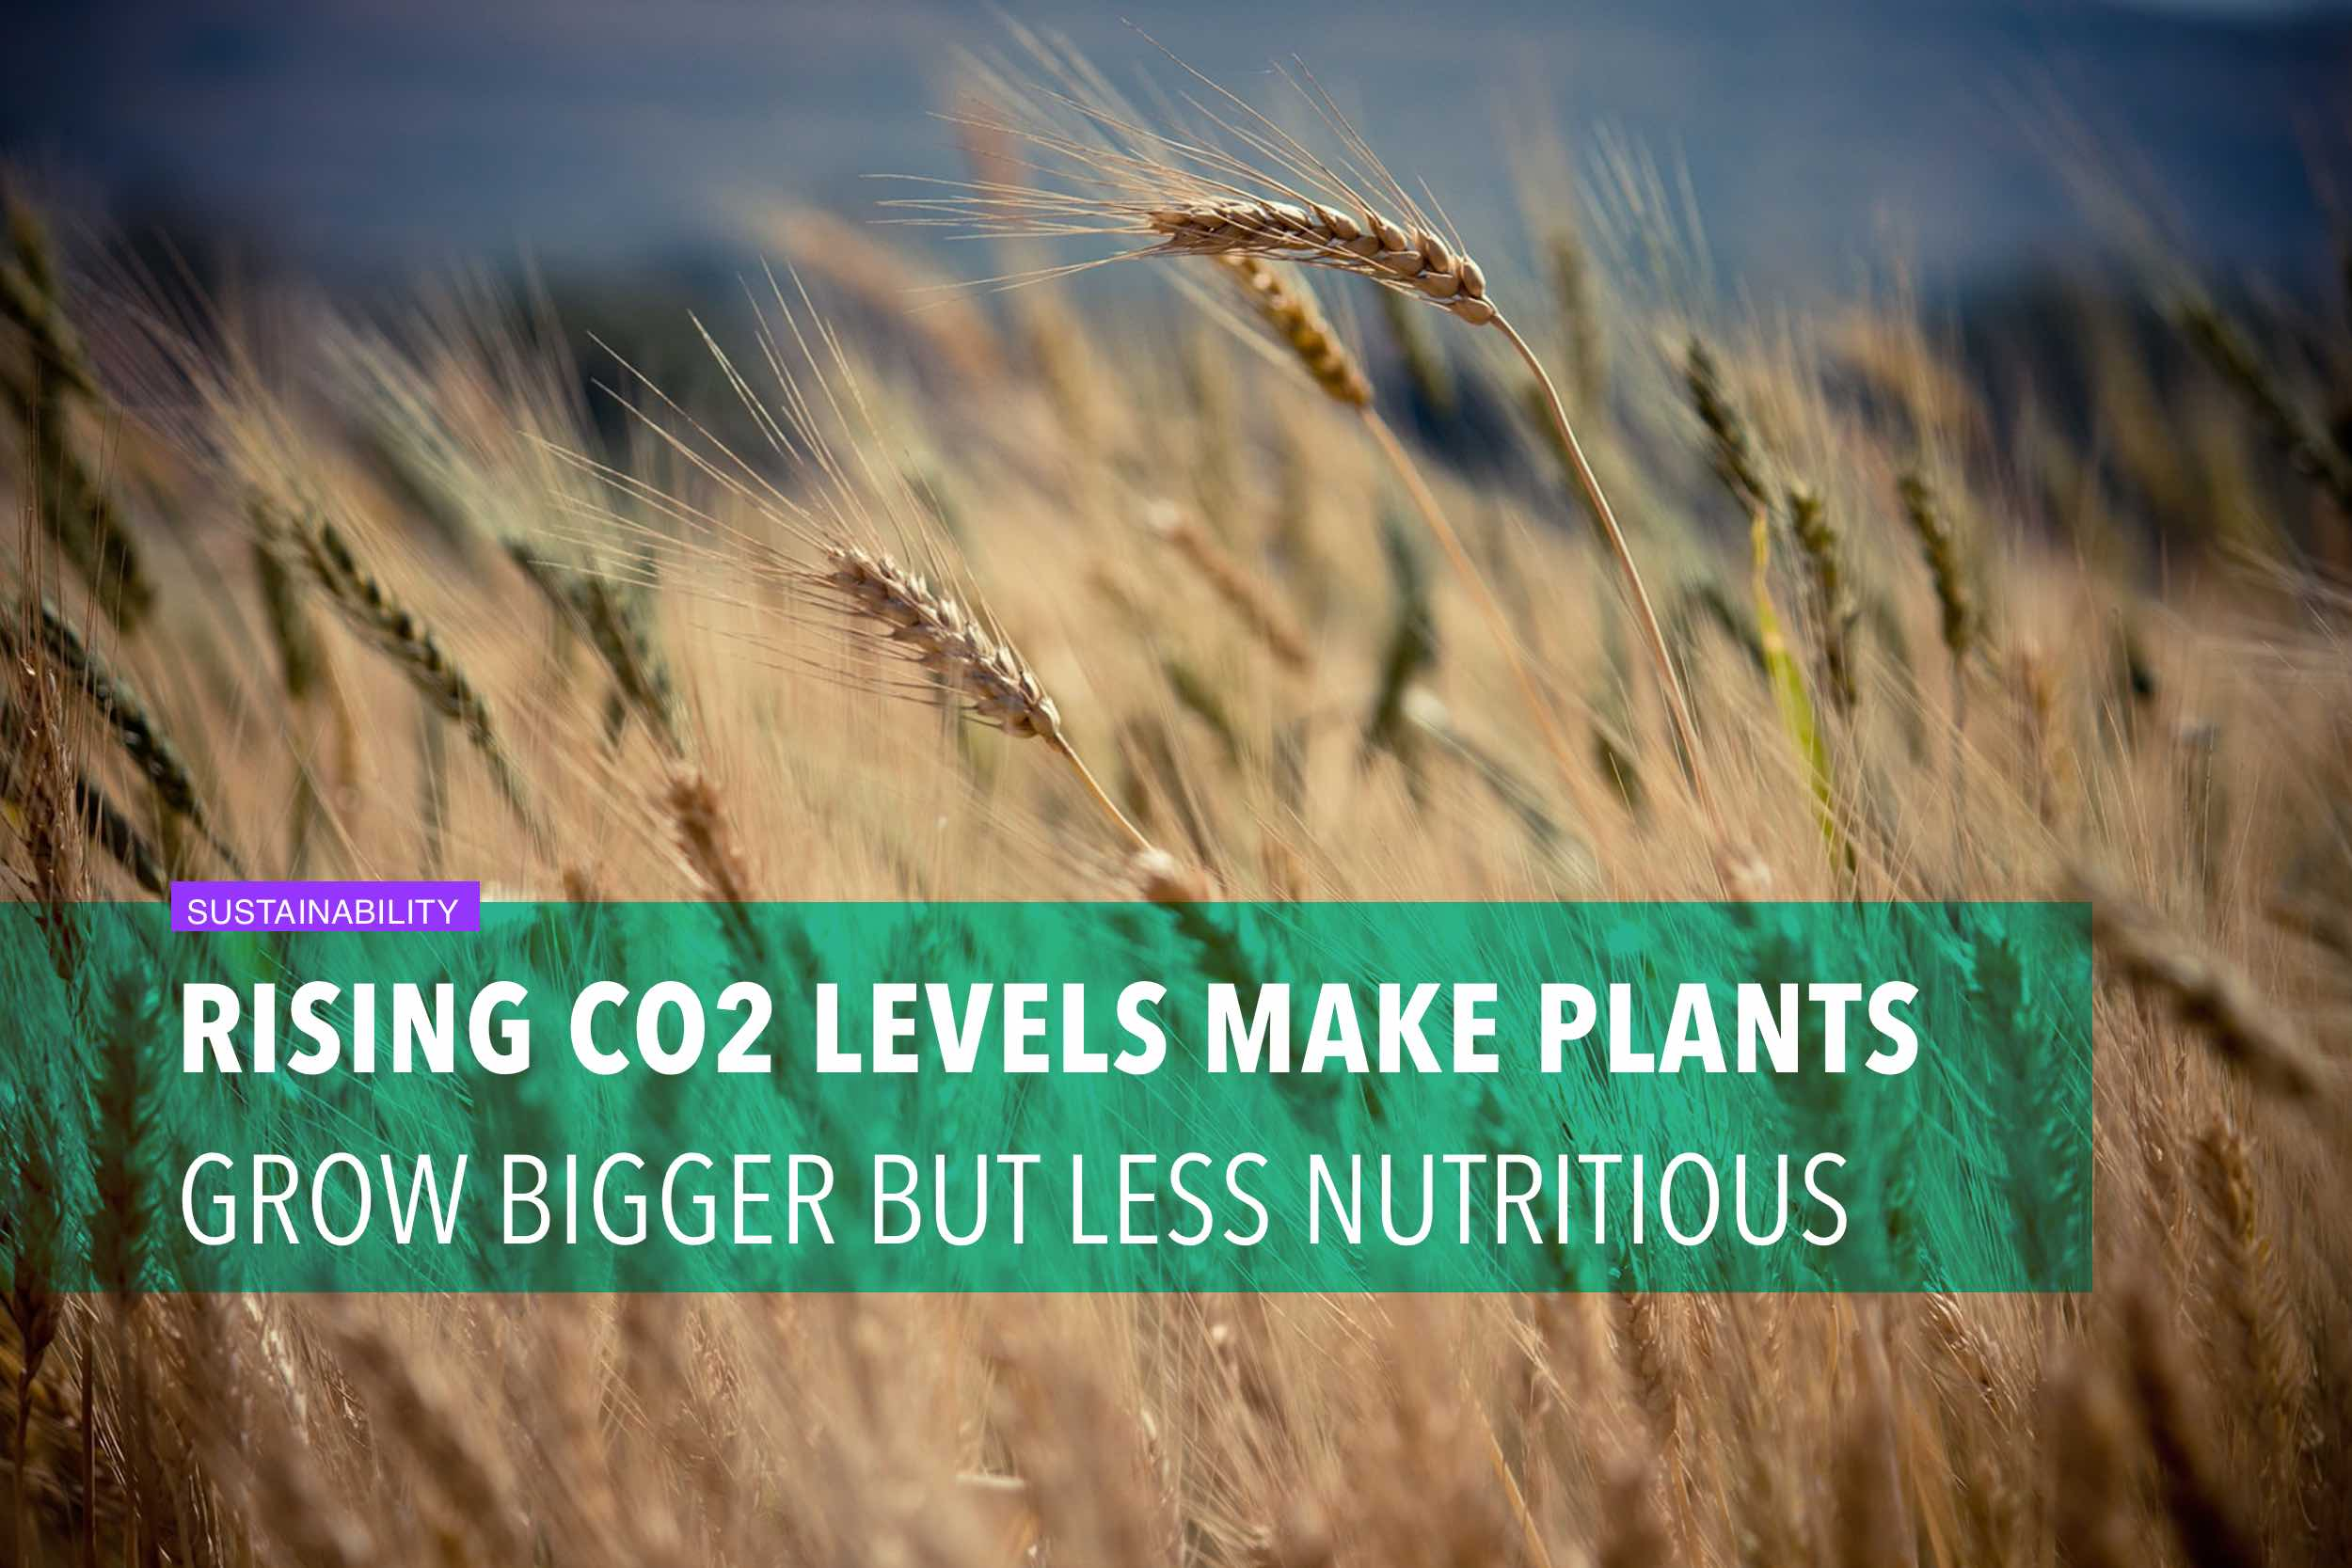 Rising CO2 levels make plants grow bigger but less nutritious